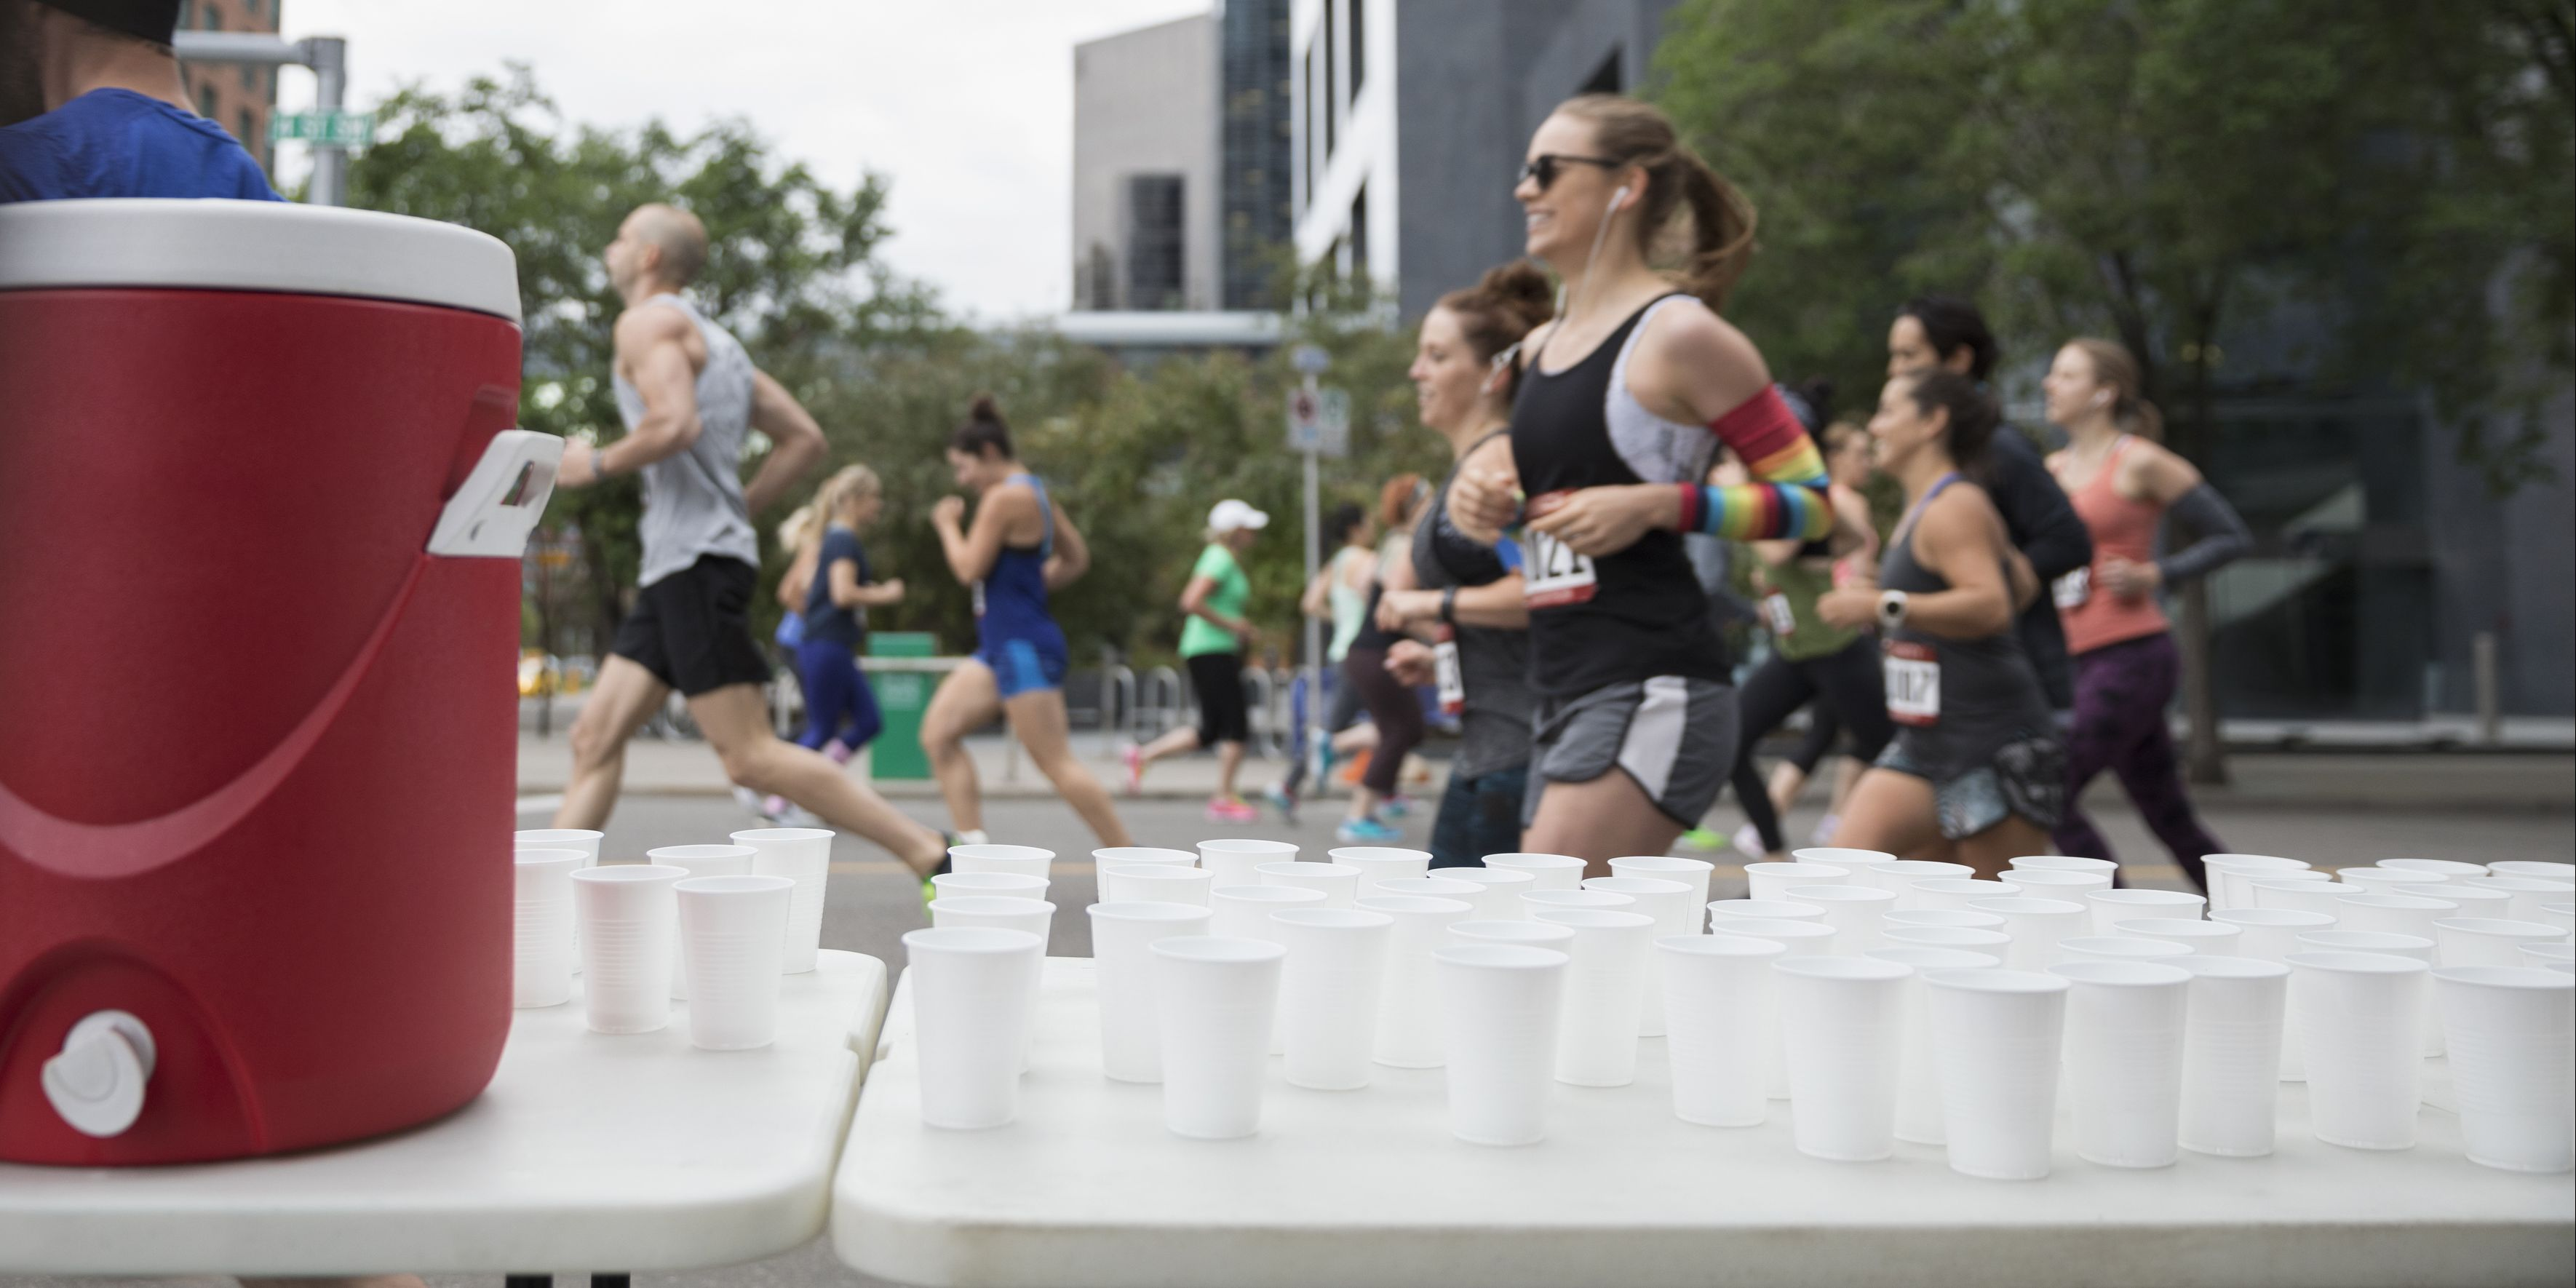 Marathon runners running, passing water station on urban street